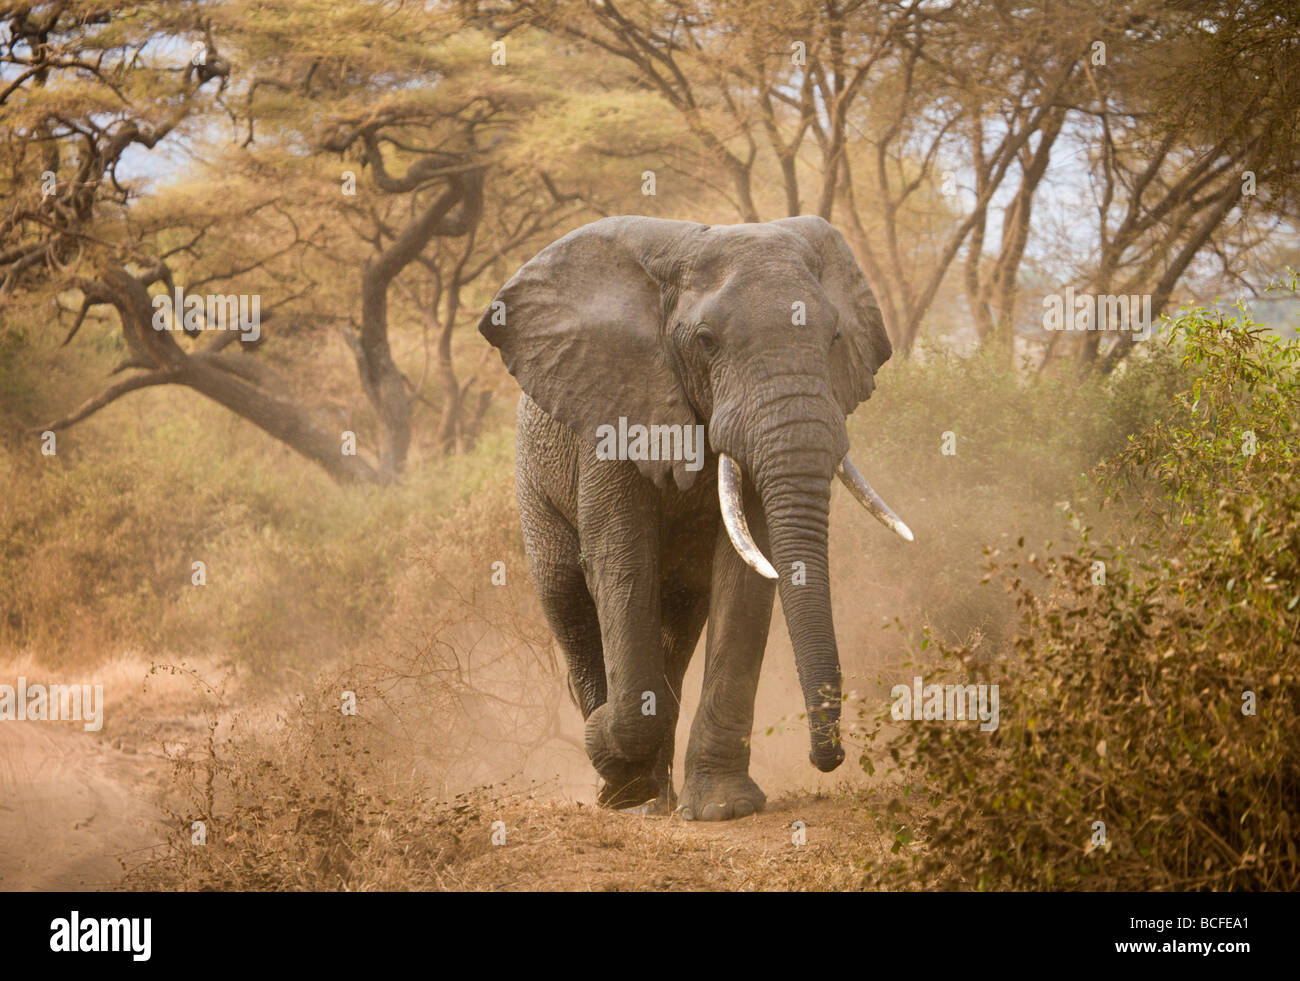 Loxodonta africana (Elephant), Lake Manyara National Park, Tanzania Stock Photo